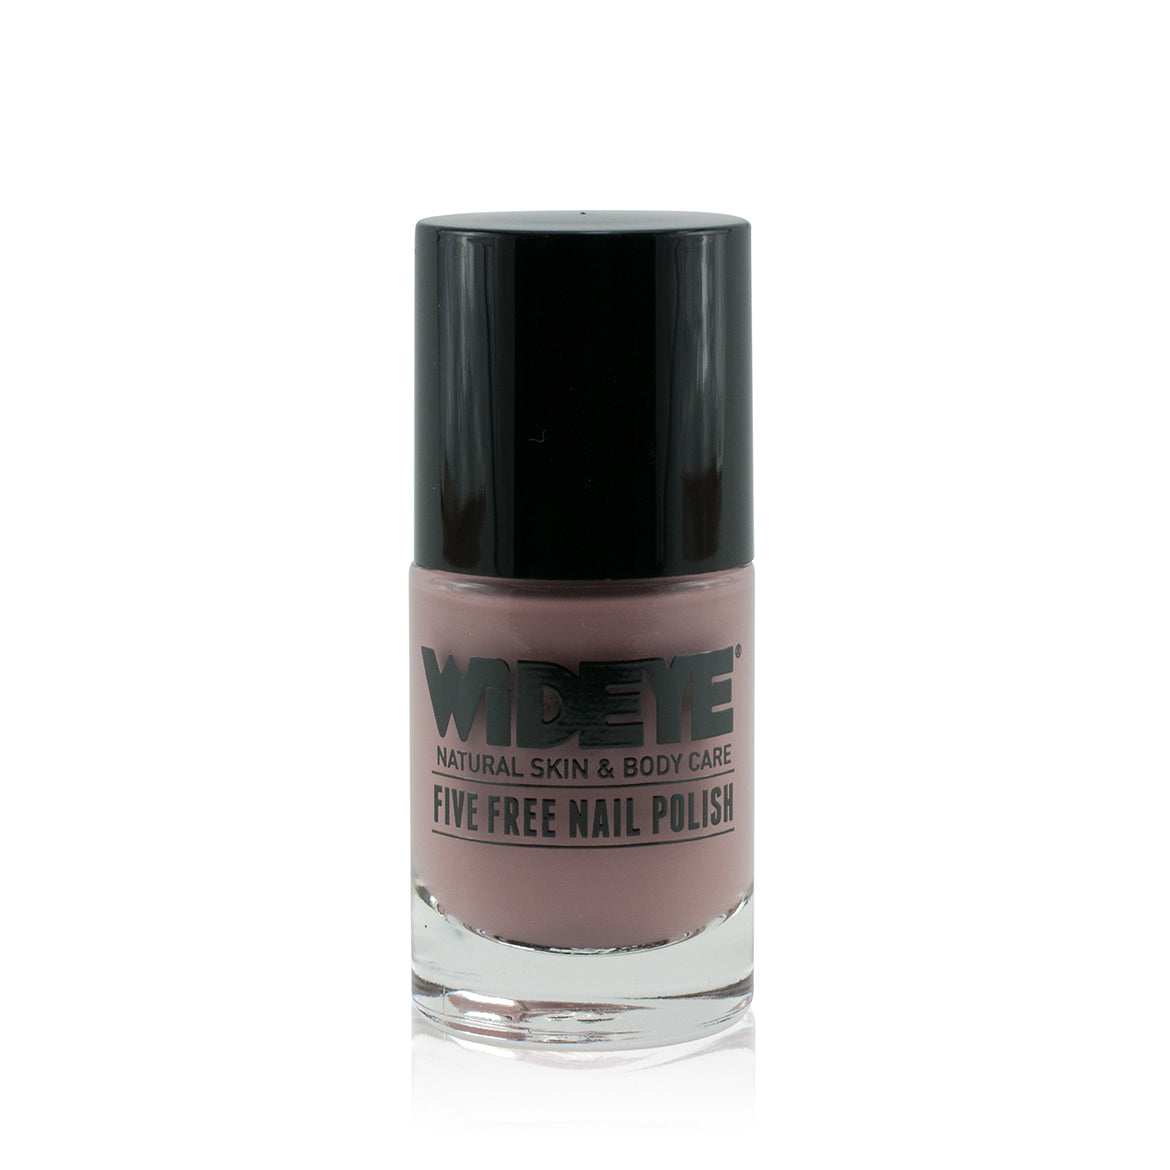 Mocha milk chocolate nail varnish in glass bottle by WiDEYE.